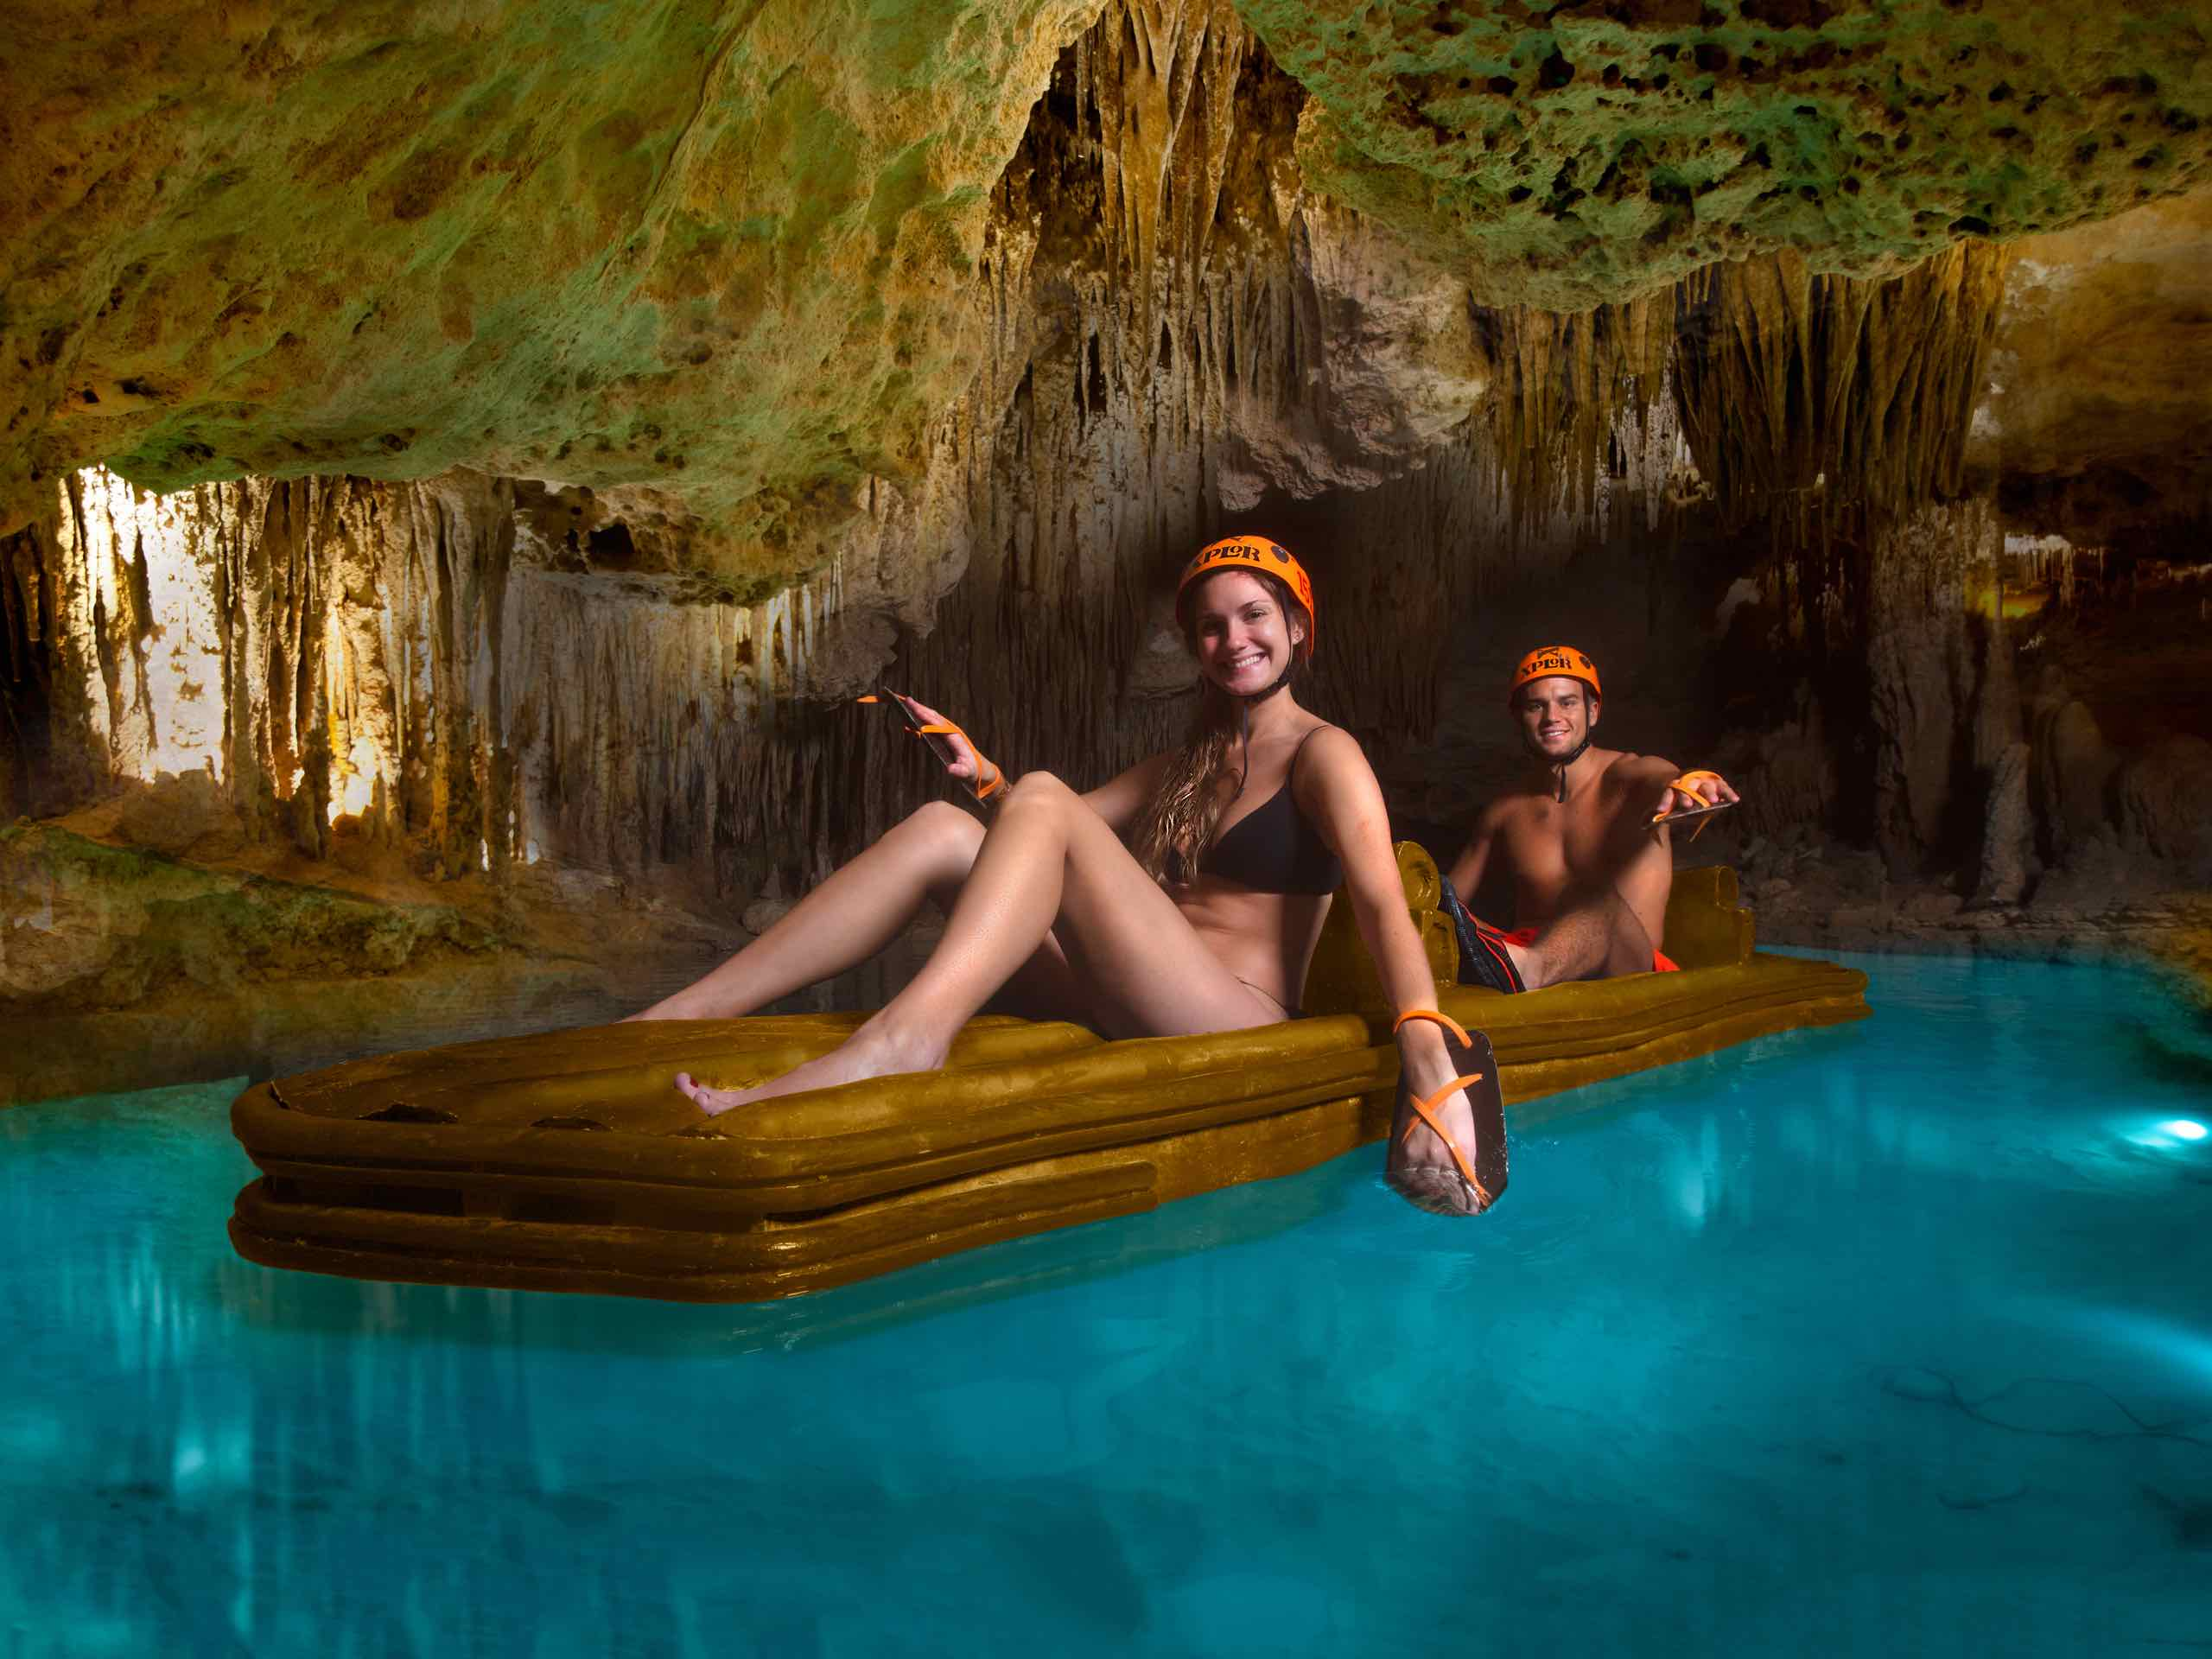 Tour Xplor Fuego - Last Minute Tours in Cancún and Riviera Maya